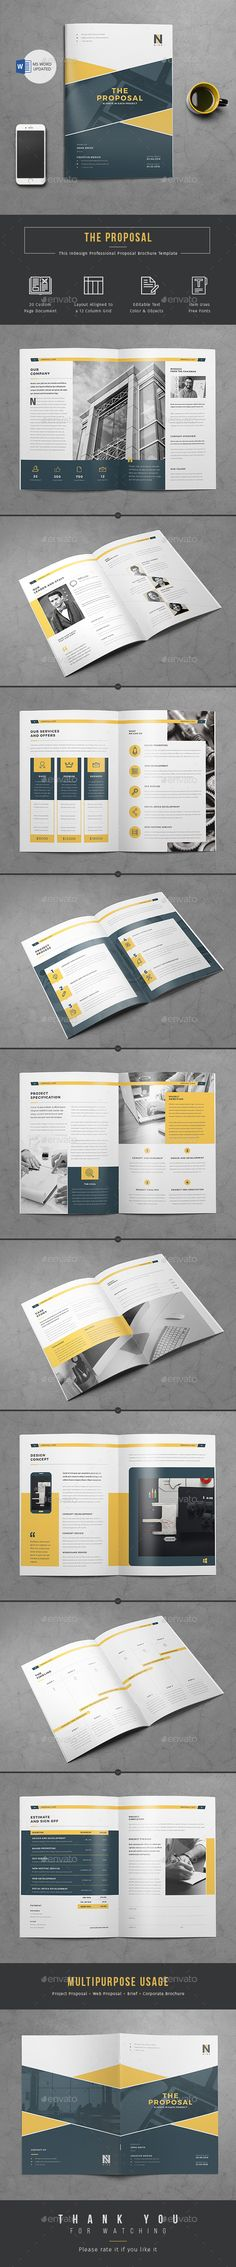 Proposal and Portfolio TemplateMinimal and Professional Proposal - professional proposal templates